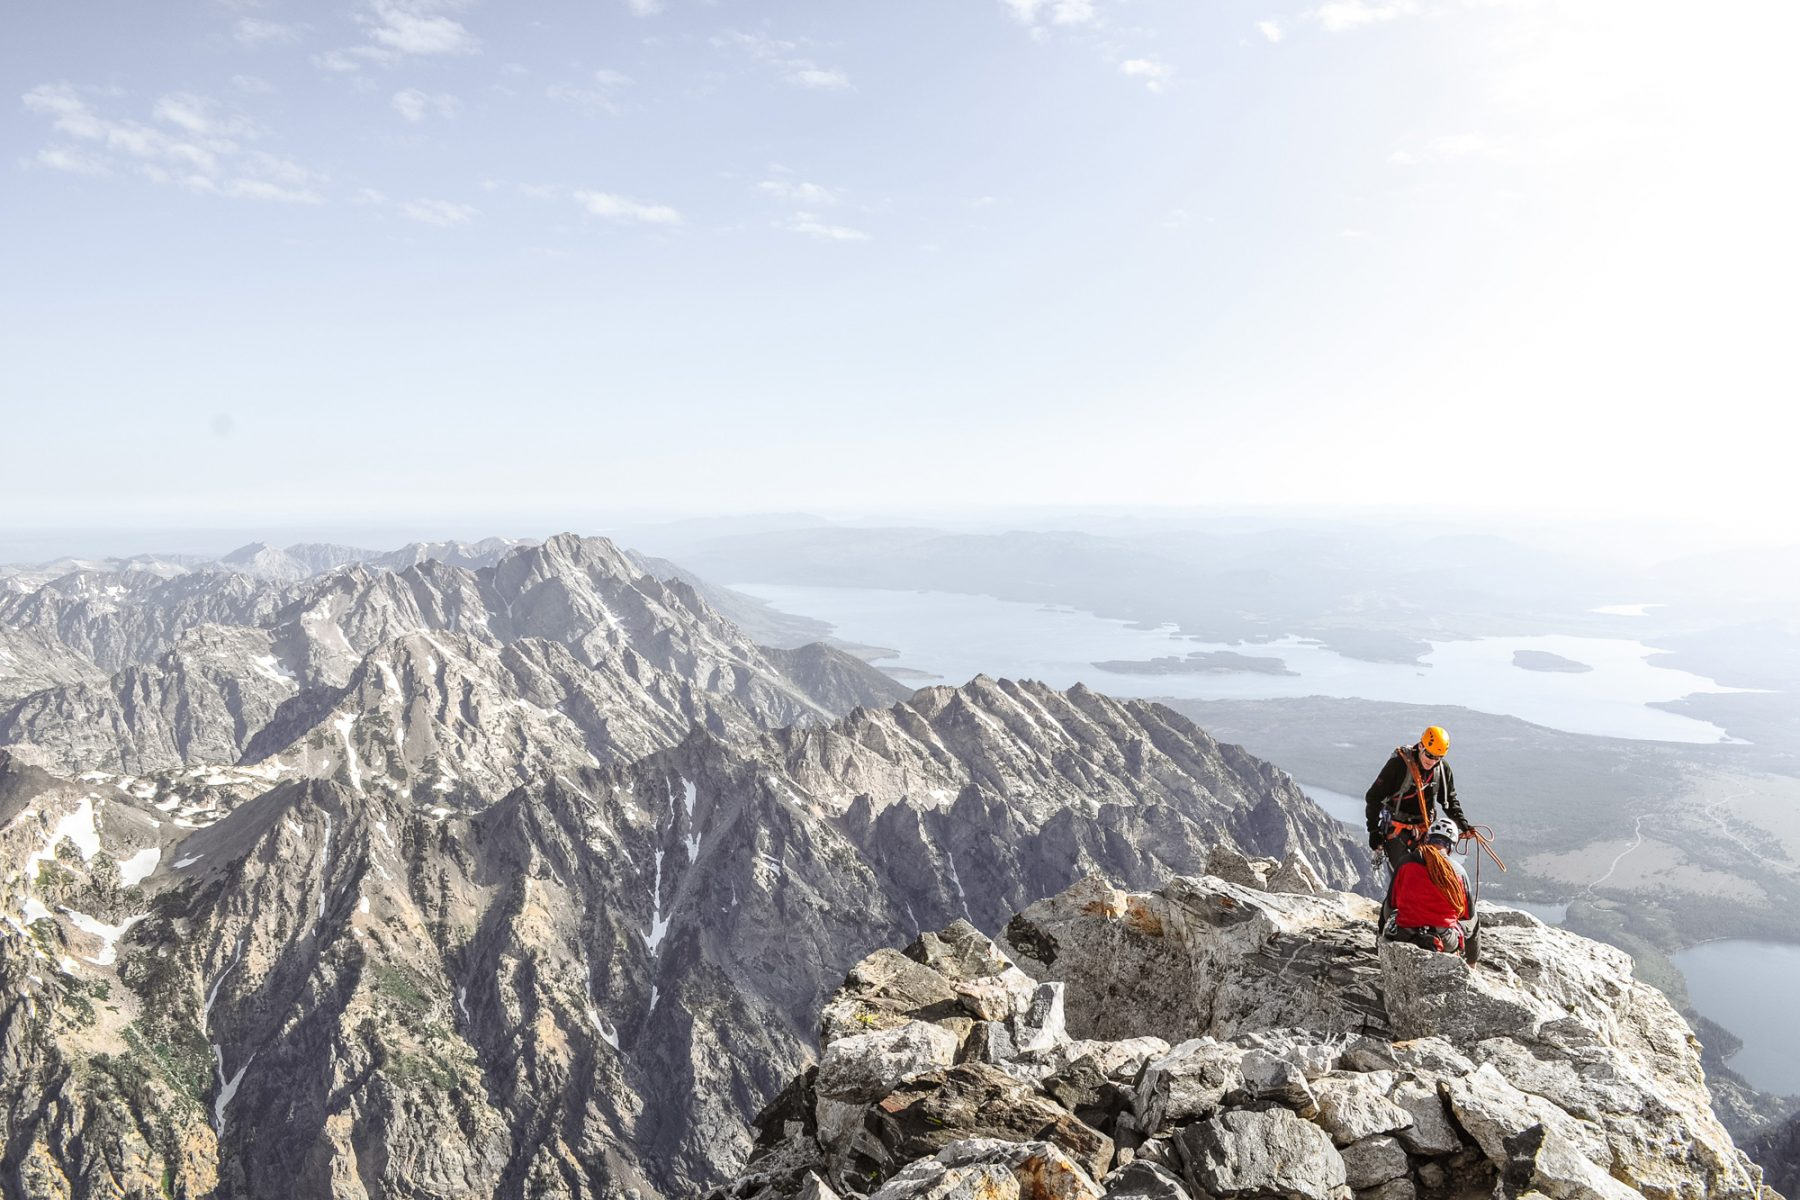 Climbers at top of mountain in Grand Teton National Park